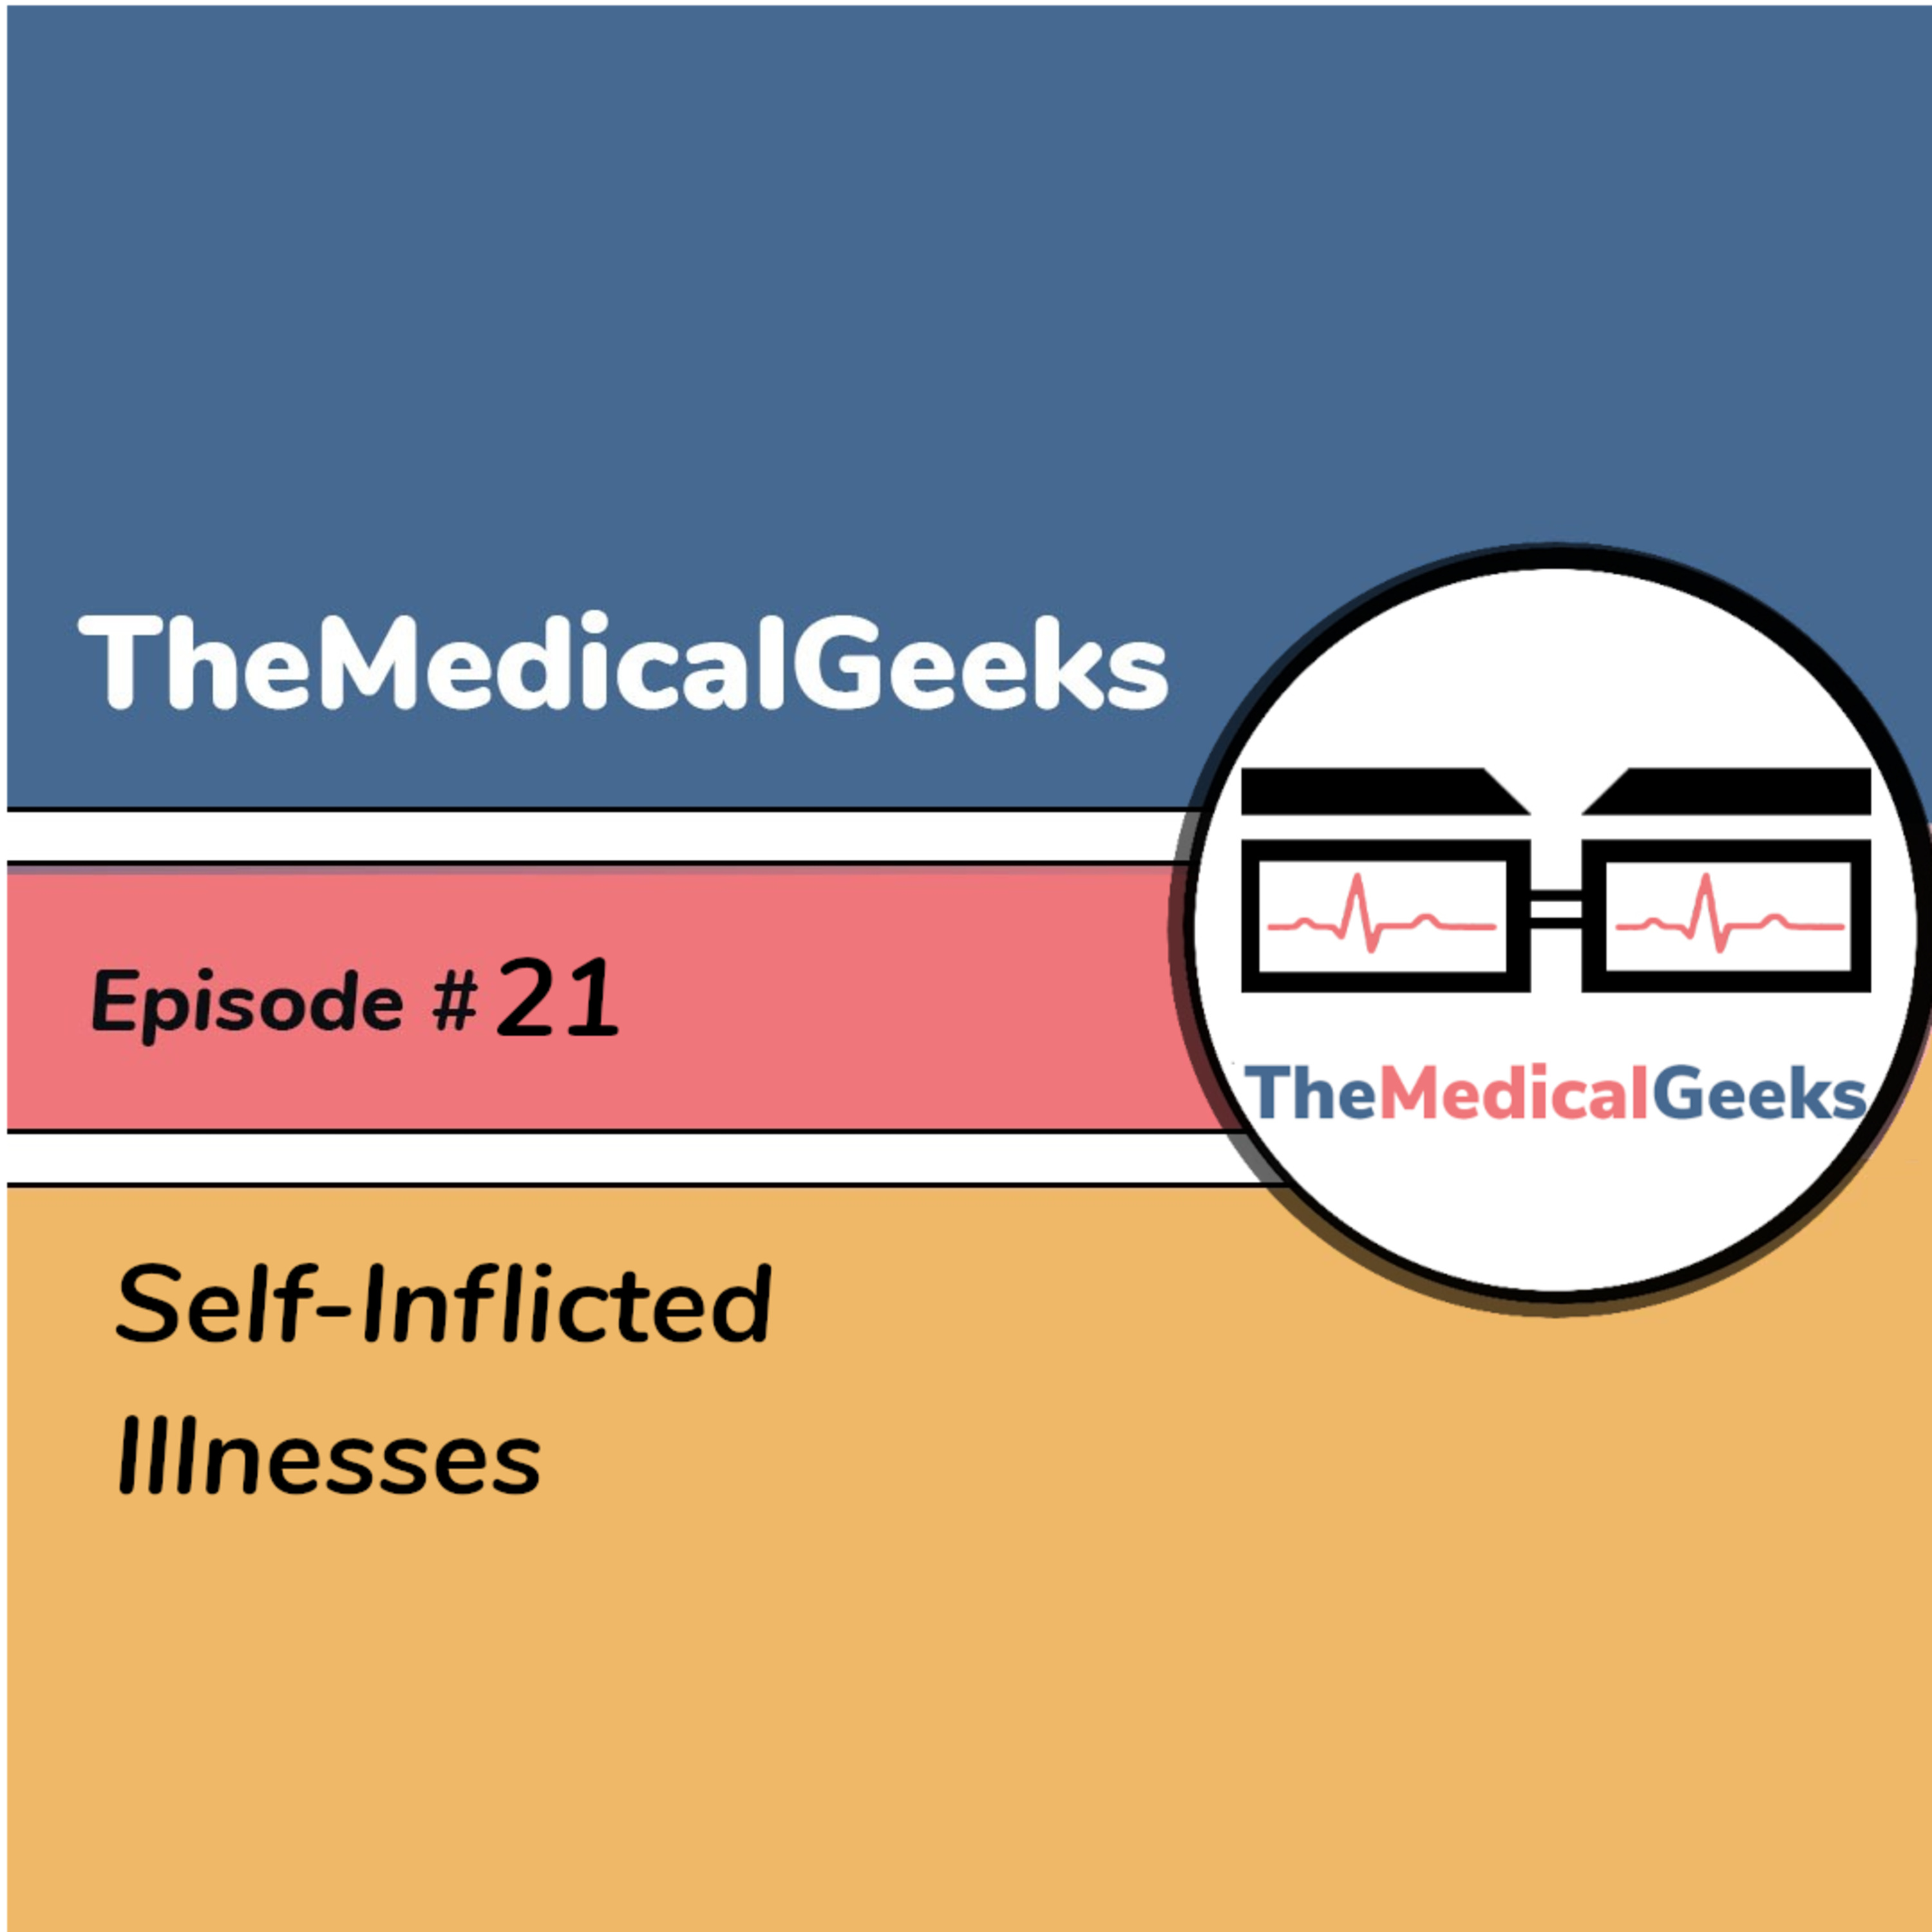 #21 Episode 21: Self-Inflicted Illnesses